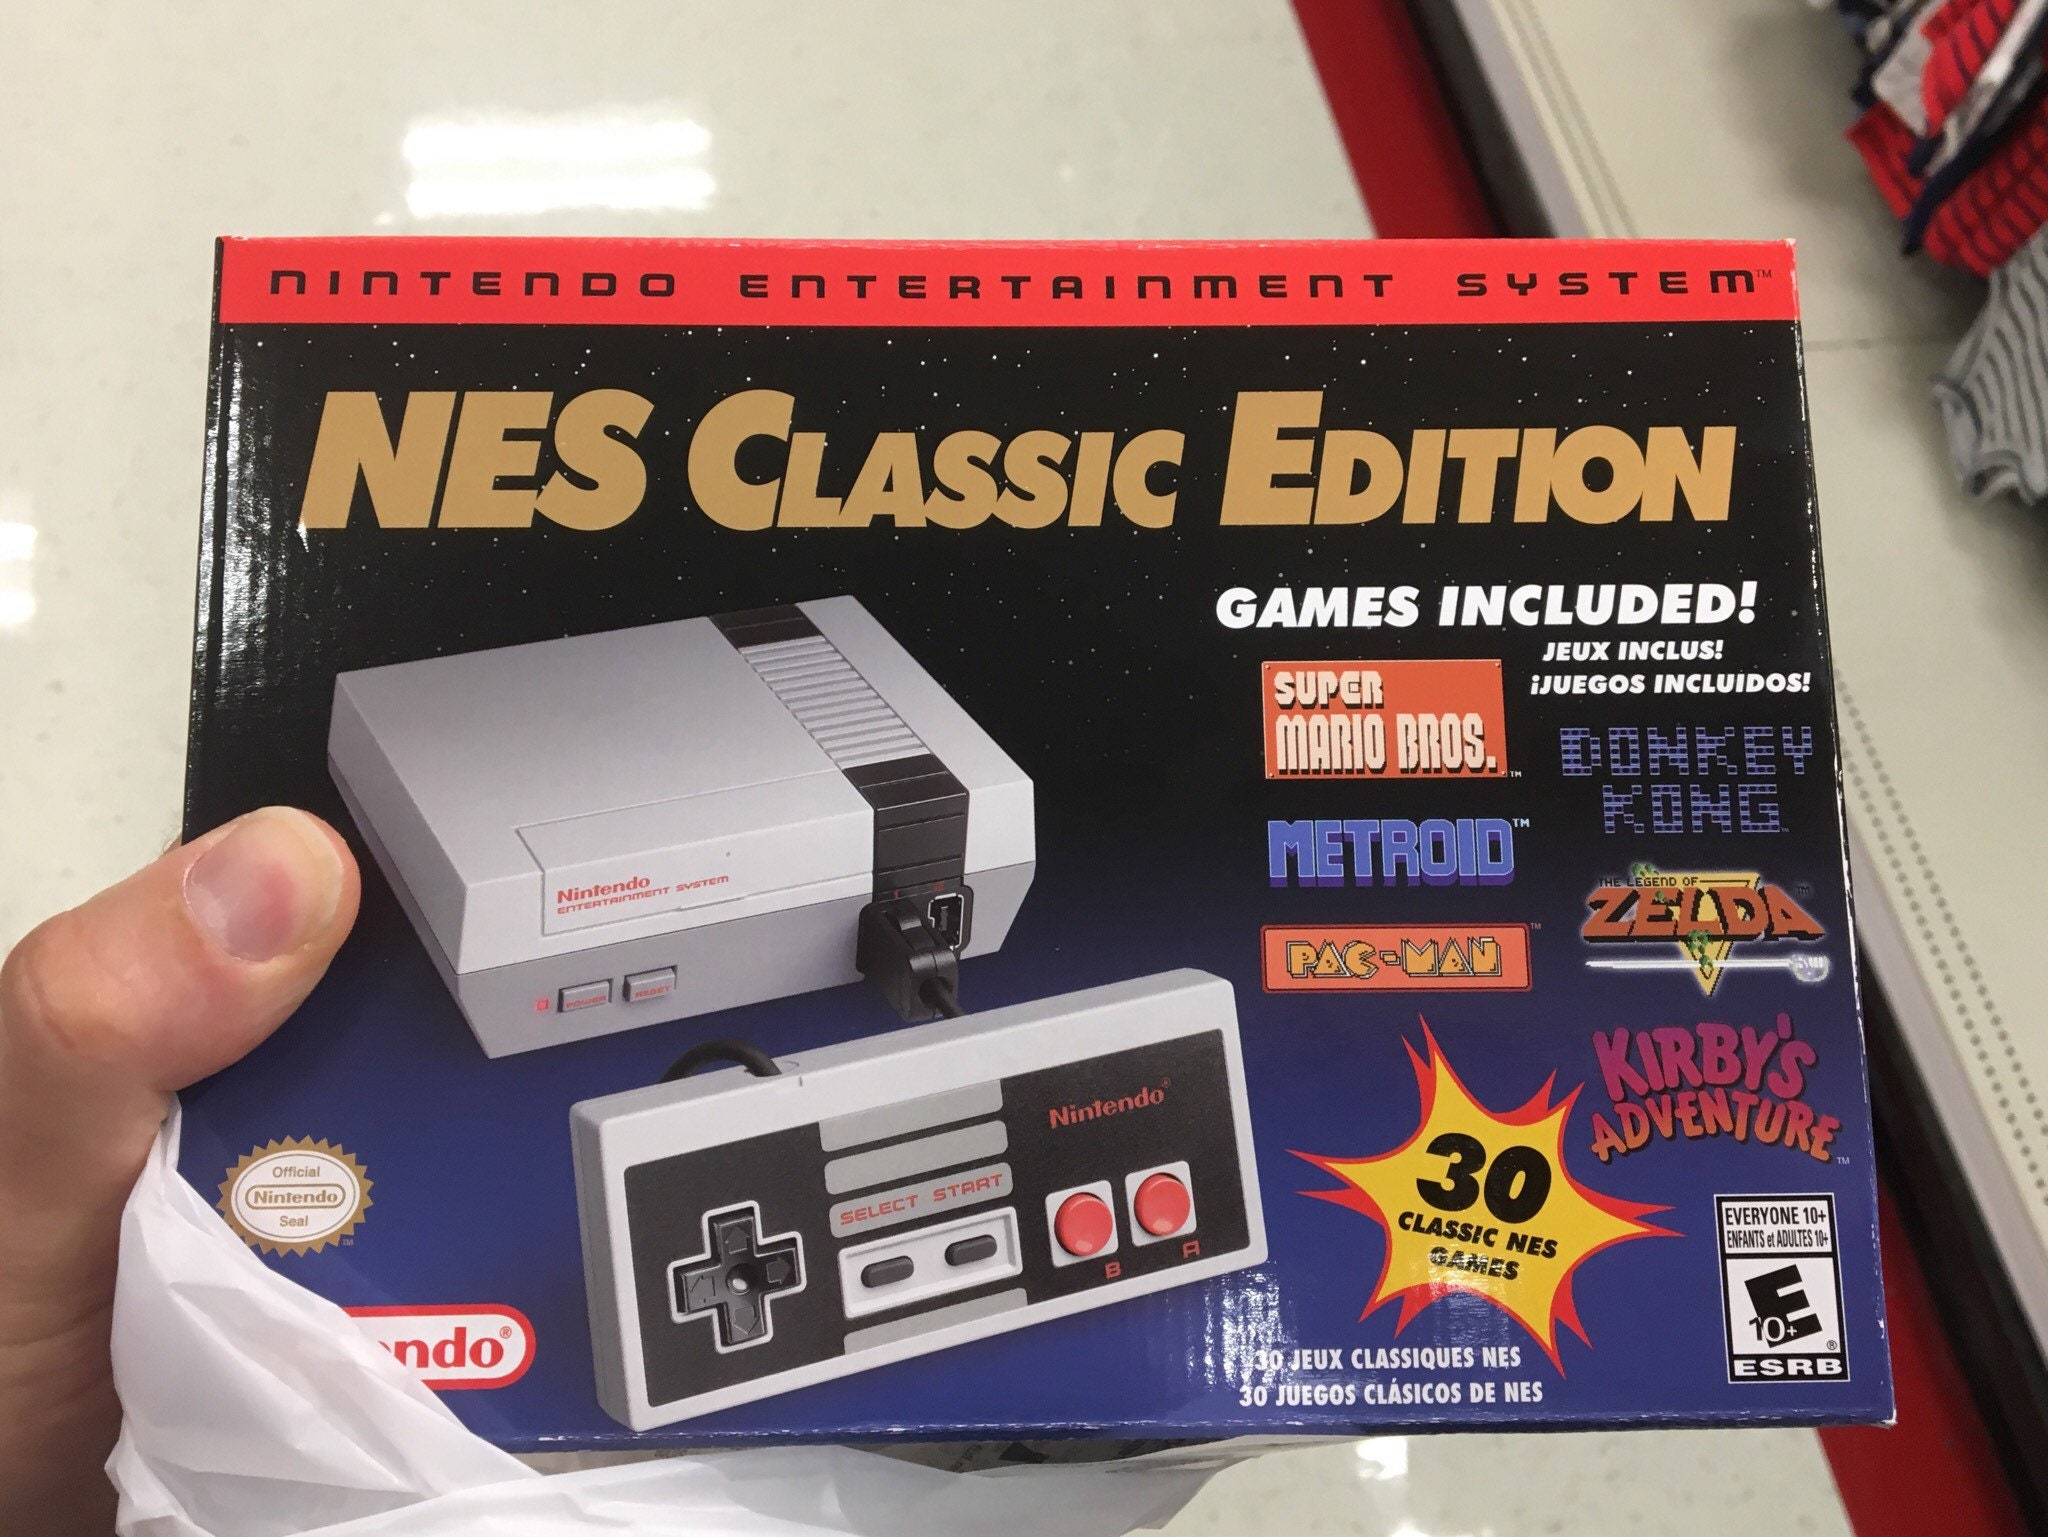 940 Games 6 Systems Modded Nes Classic Edition 100 Etsy